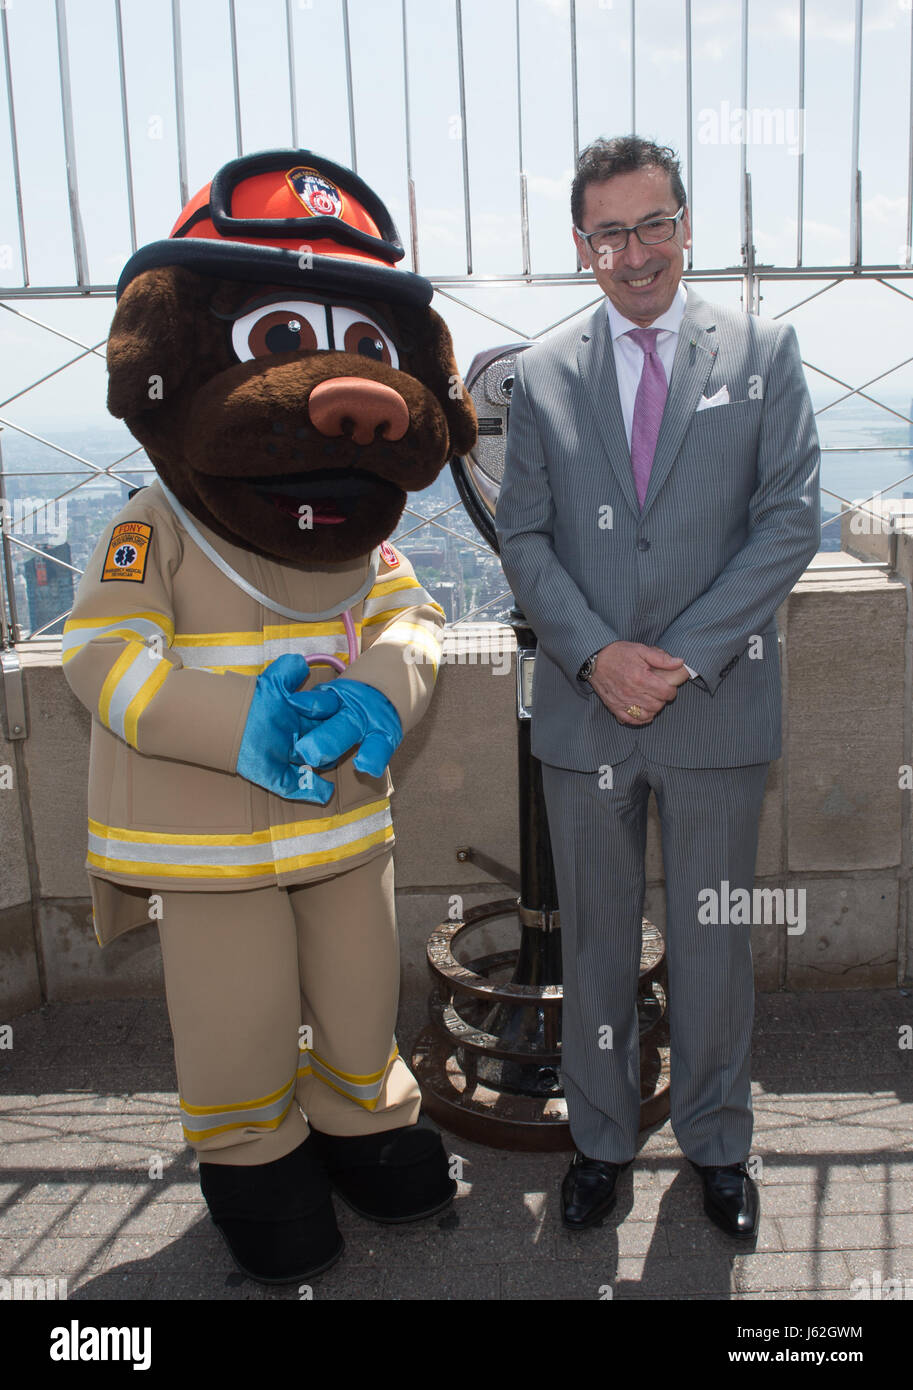 New York, NY, USA. 19th May, 2017. FDNY EMS mascot SIREN and FDNY Commissioner DANIEL NIGRO on the 86th floor after - Stock Image